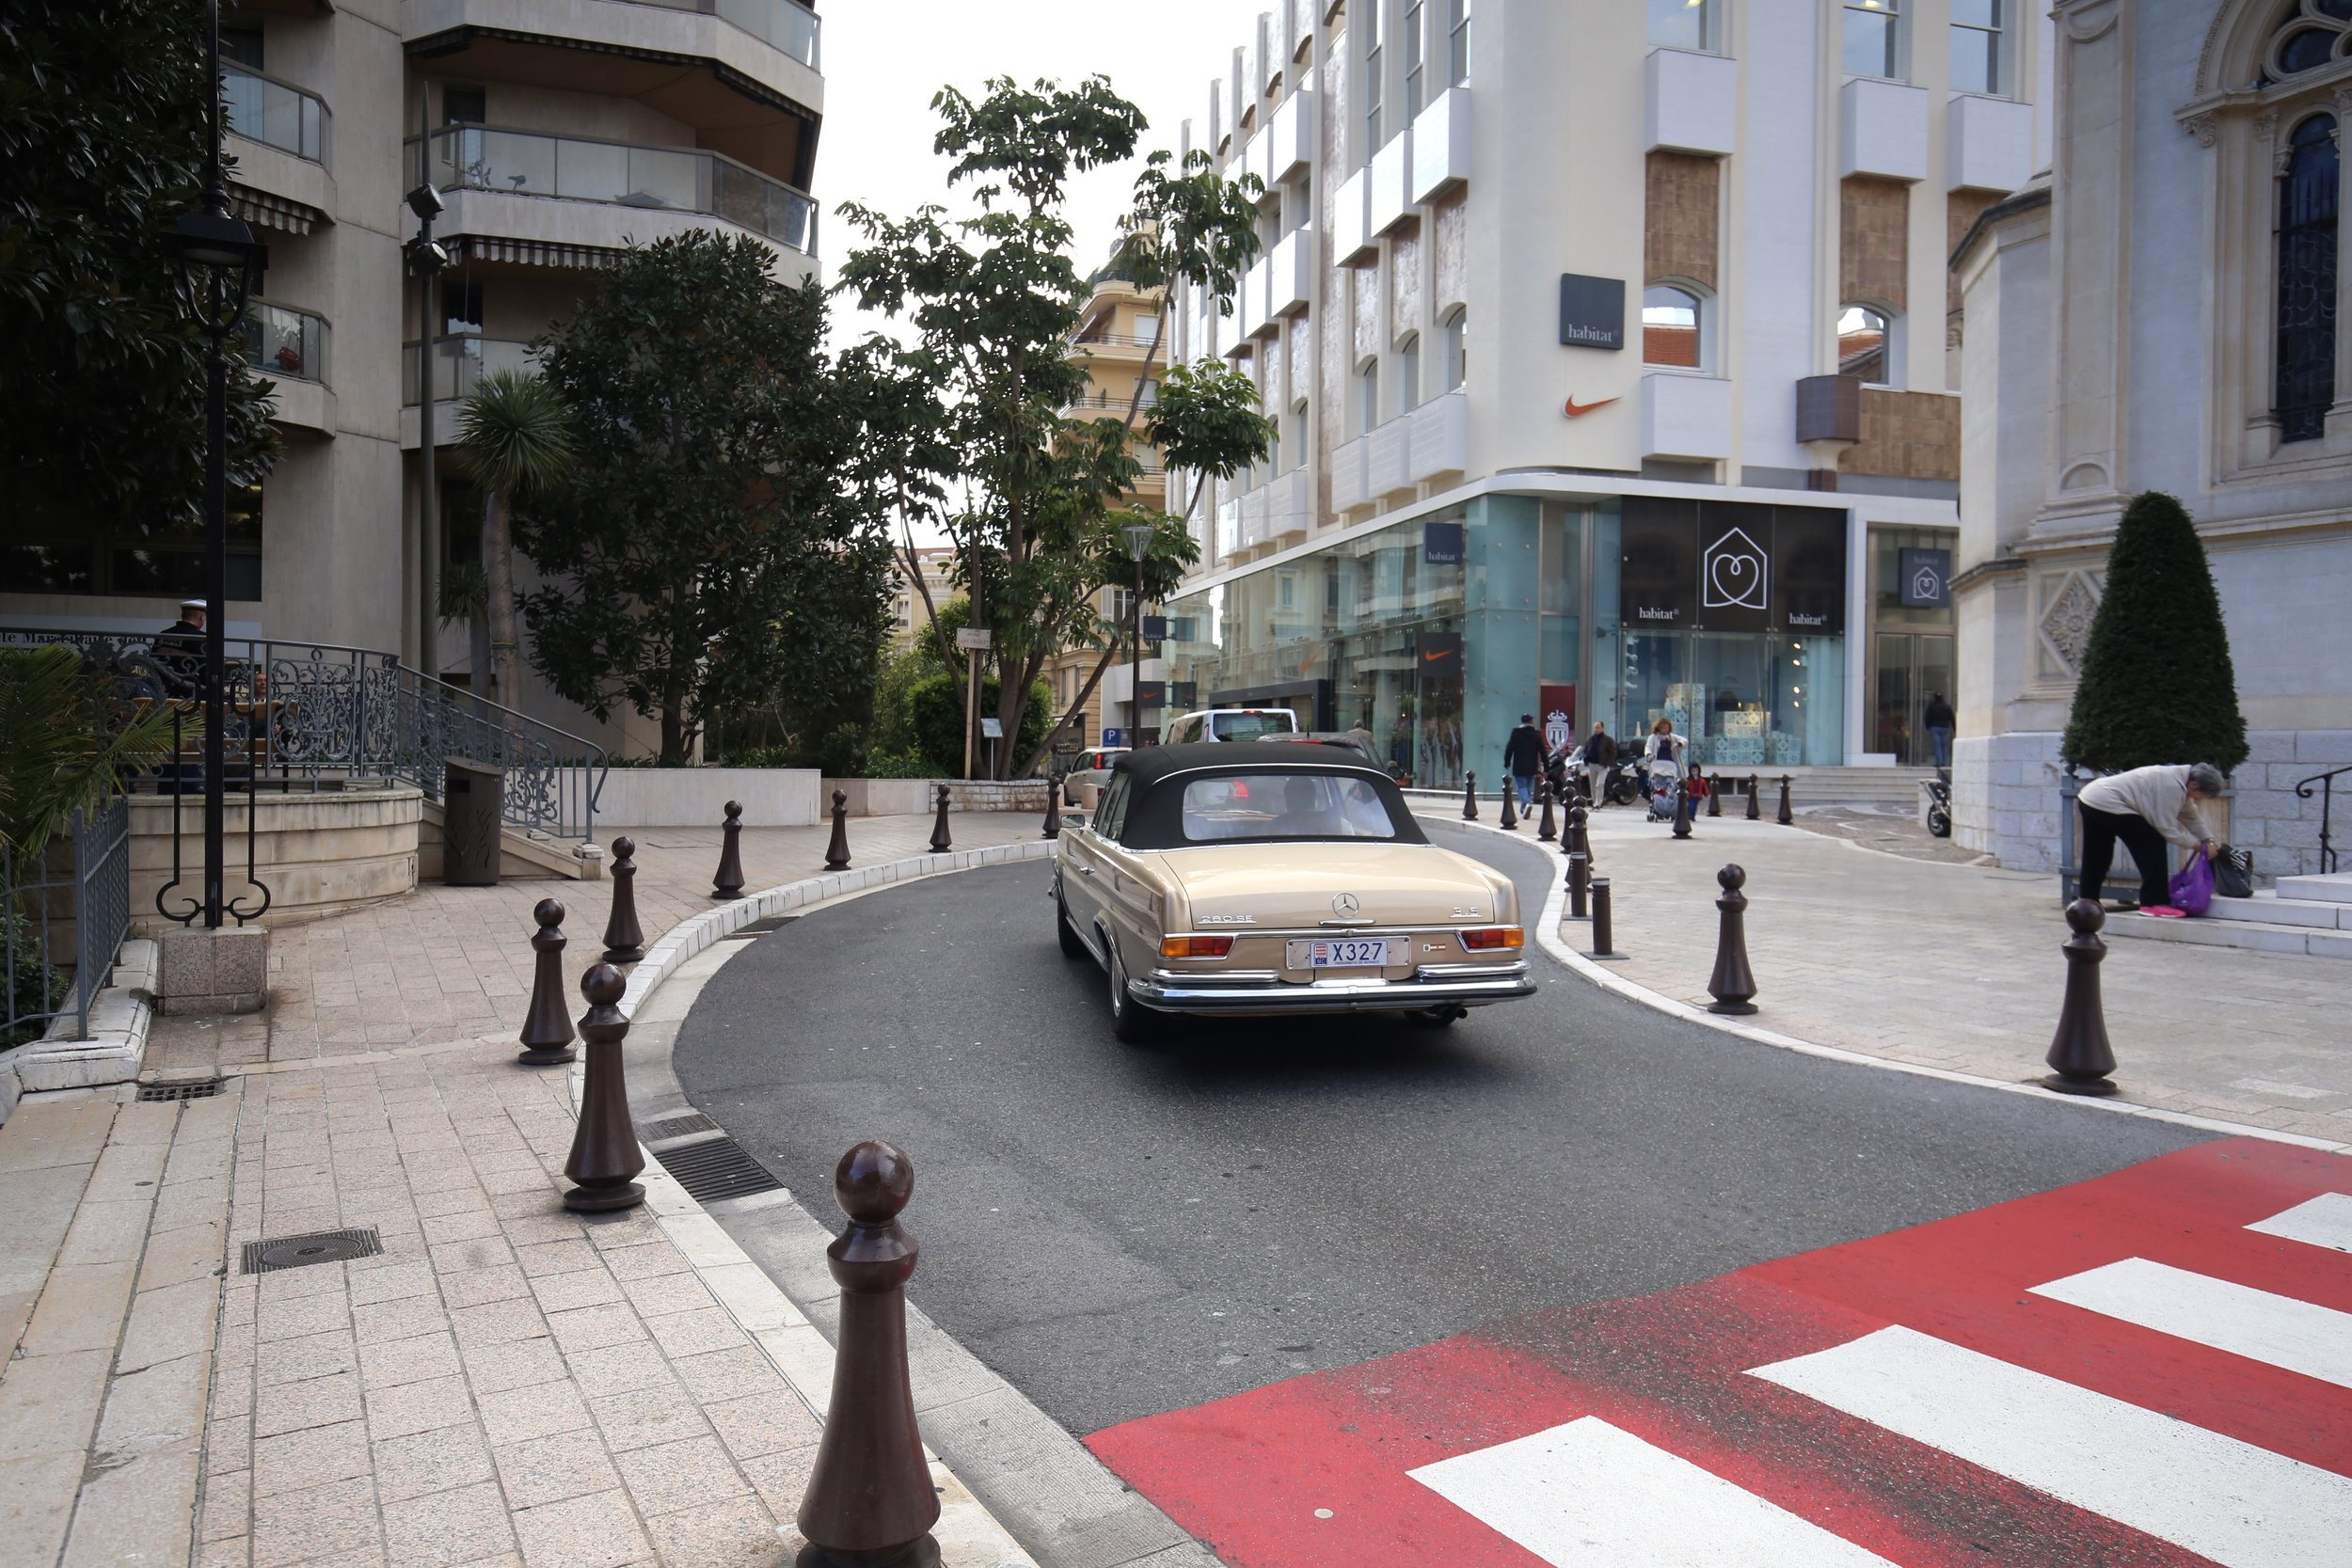 A fancy old car driving through the streets of Monaco.